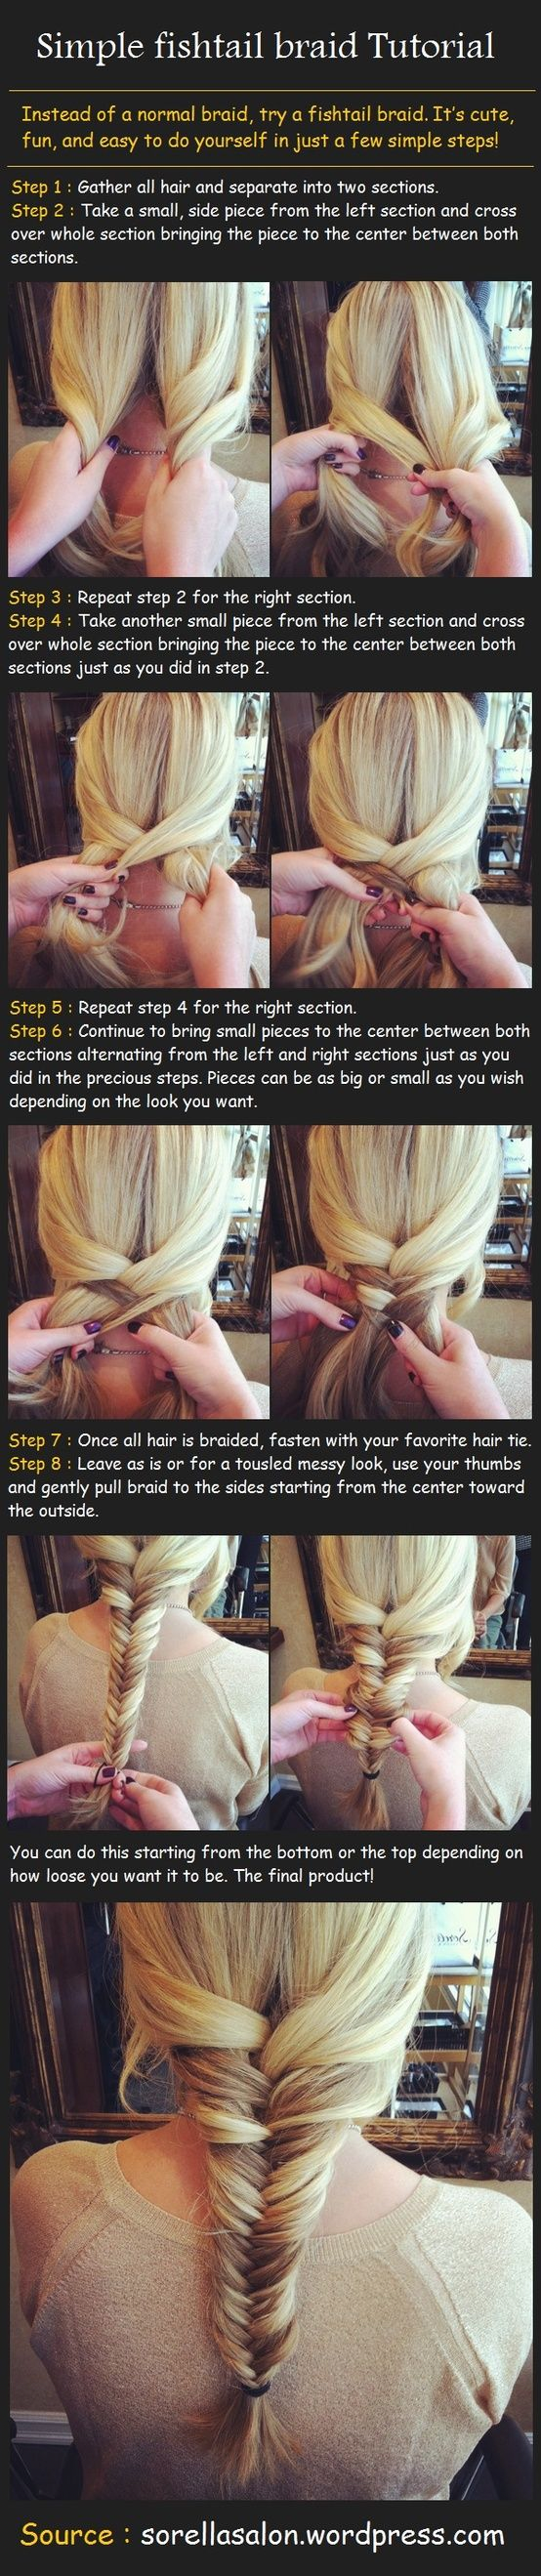 .: Fishtail Braid Tutorials, Fish Tail, Hairdos, Hair Do, Hairstyle, Hair Style, Fishtail Braids Tutorials, Fishtail Tutorials, Simple Fishtail